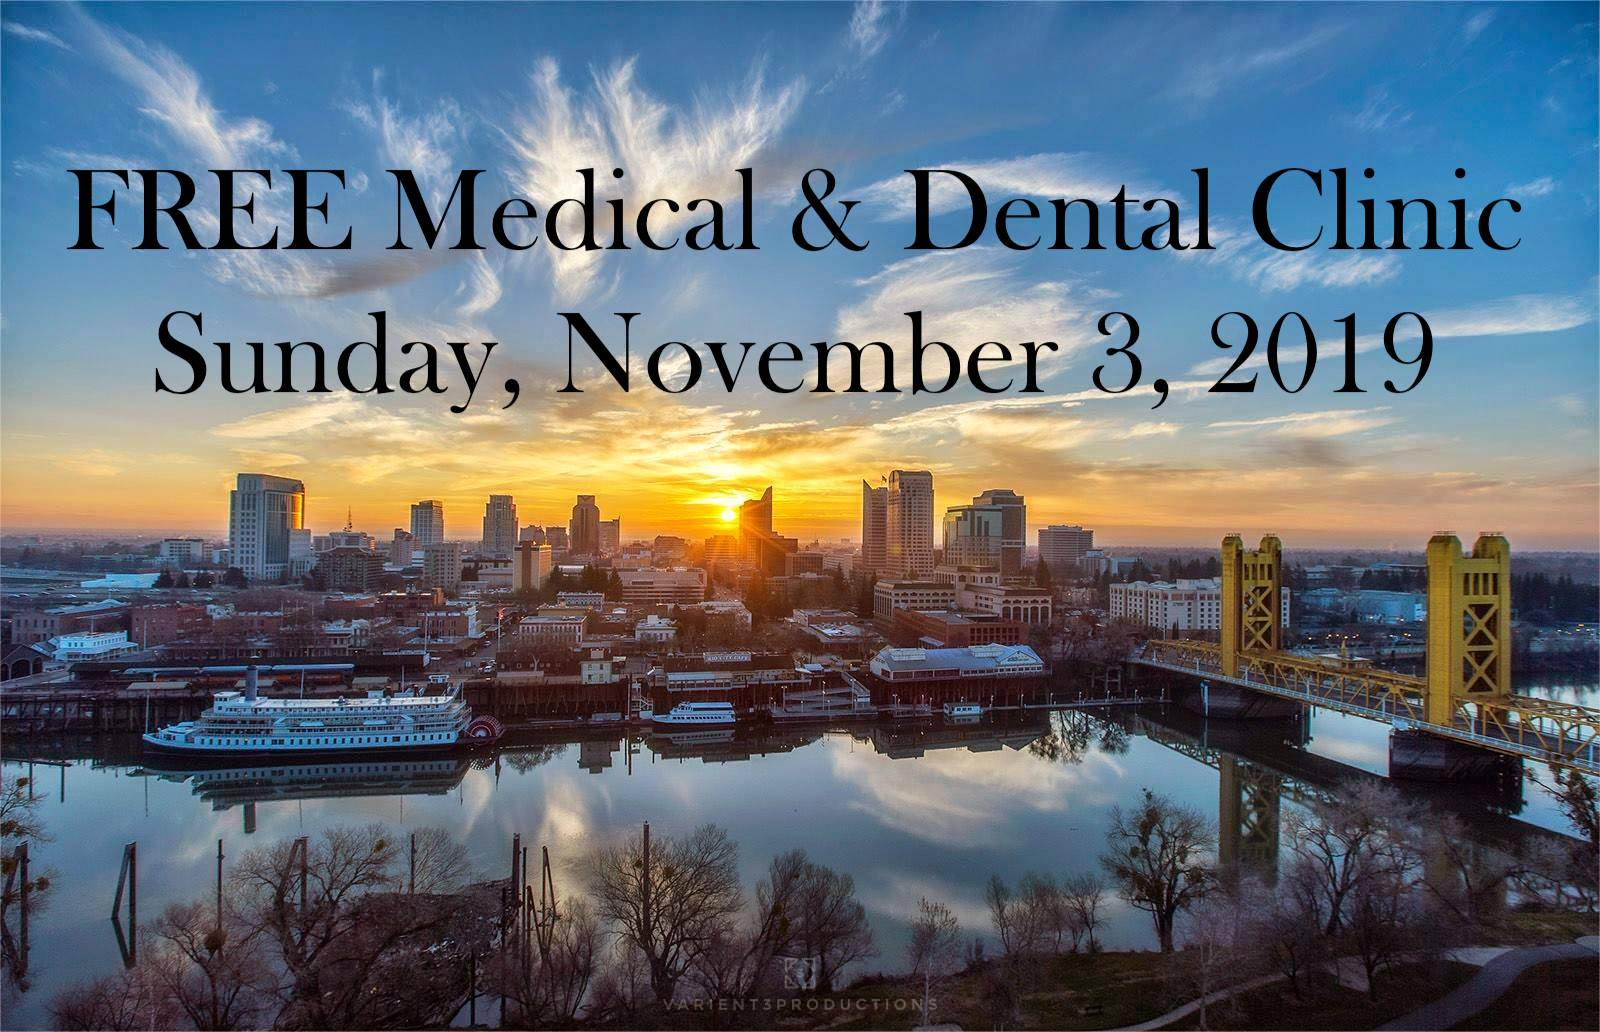 Free Medical & Dental Services Clinic